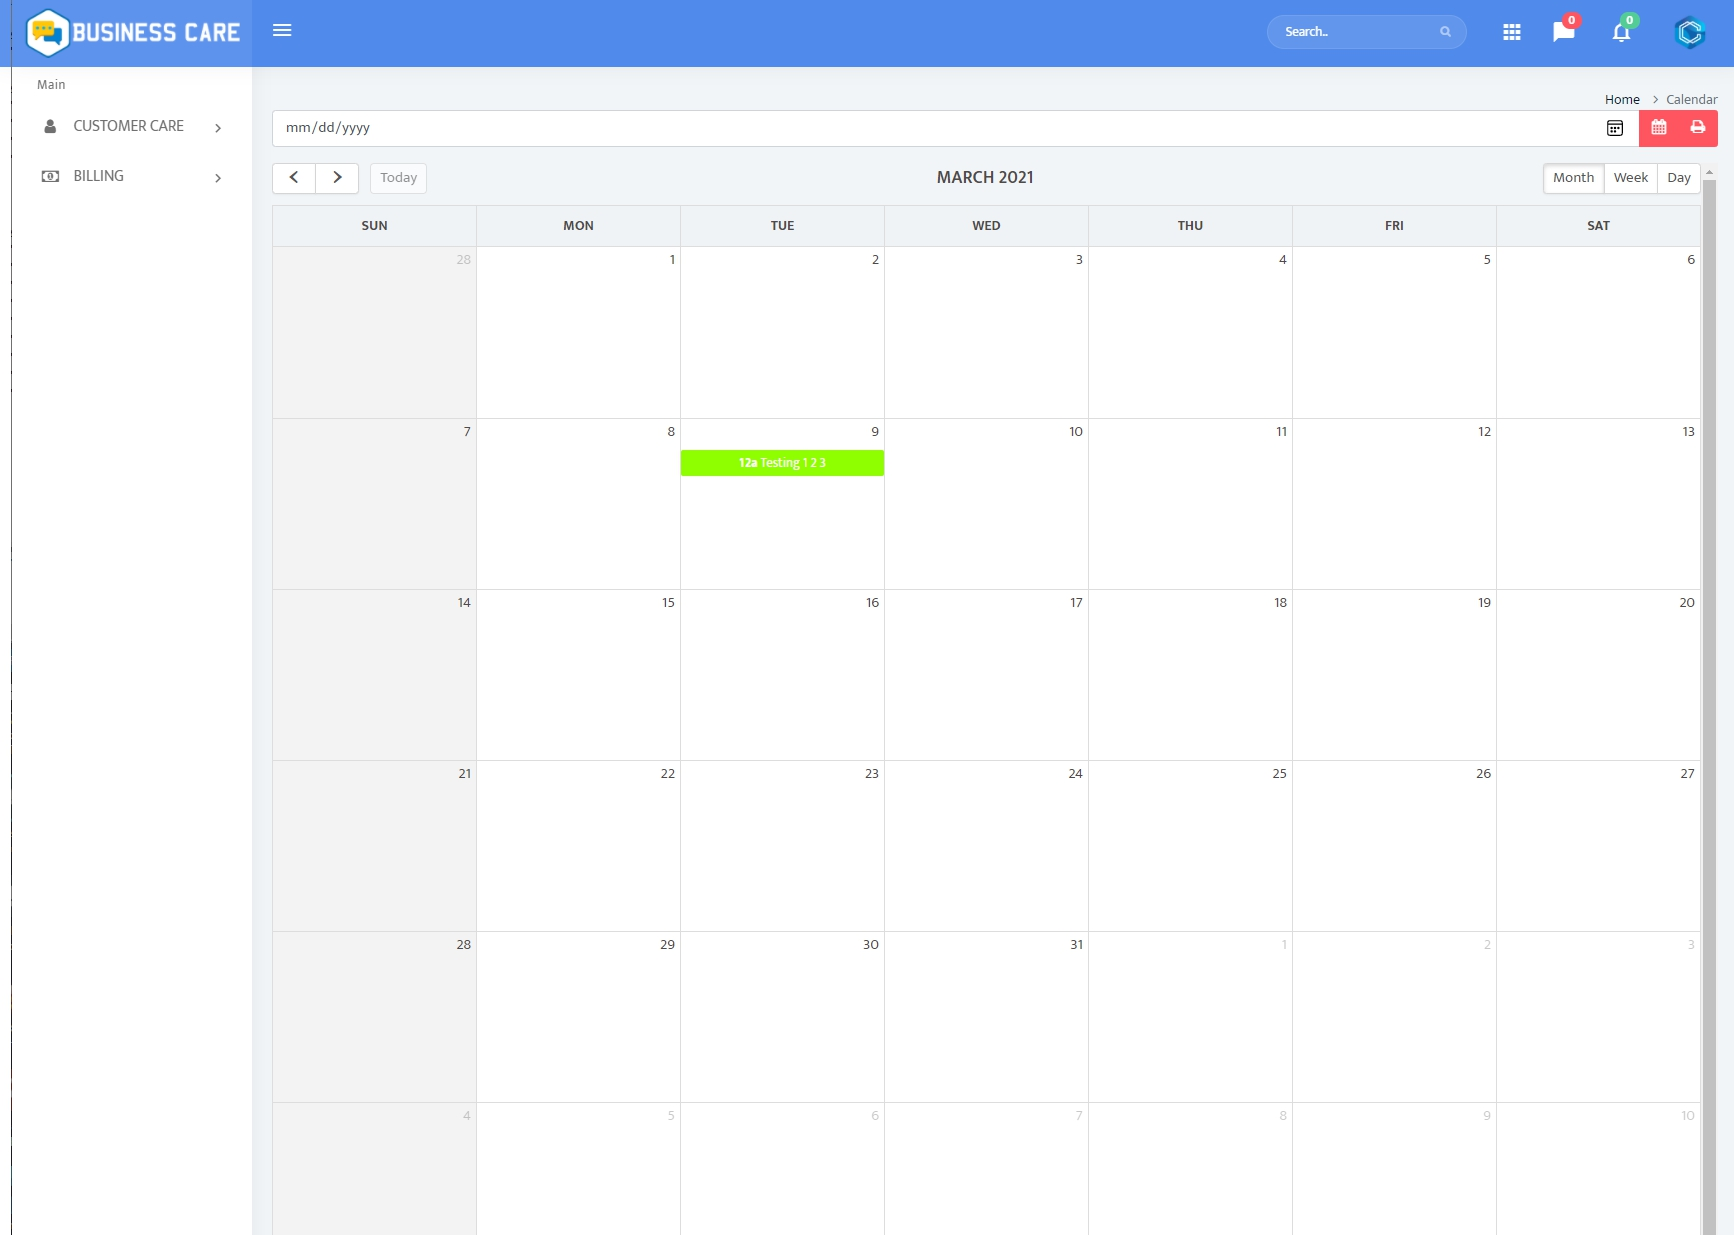 Calendar with Client Scheduling and Important Dates